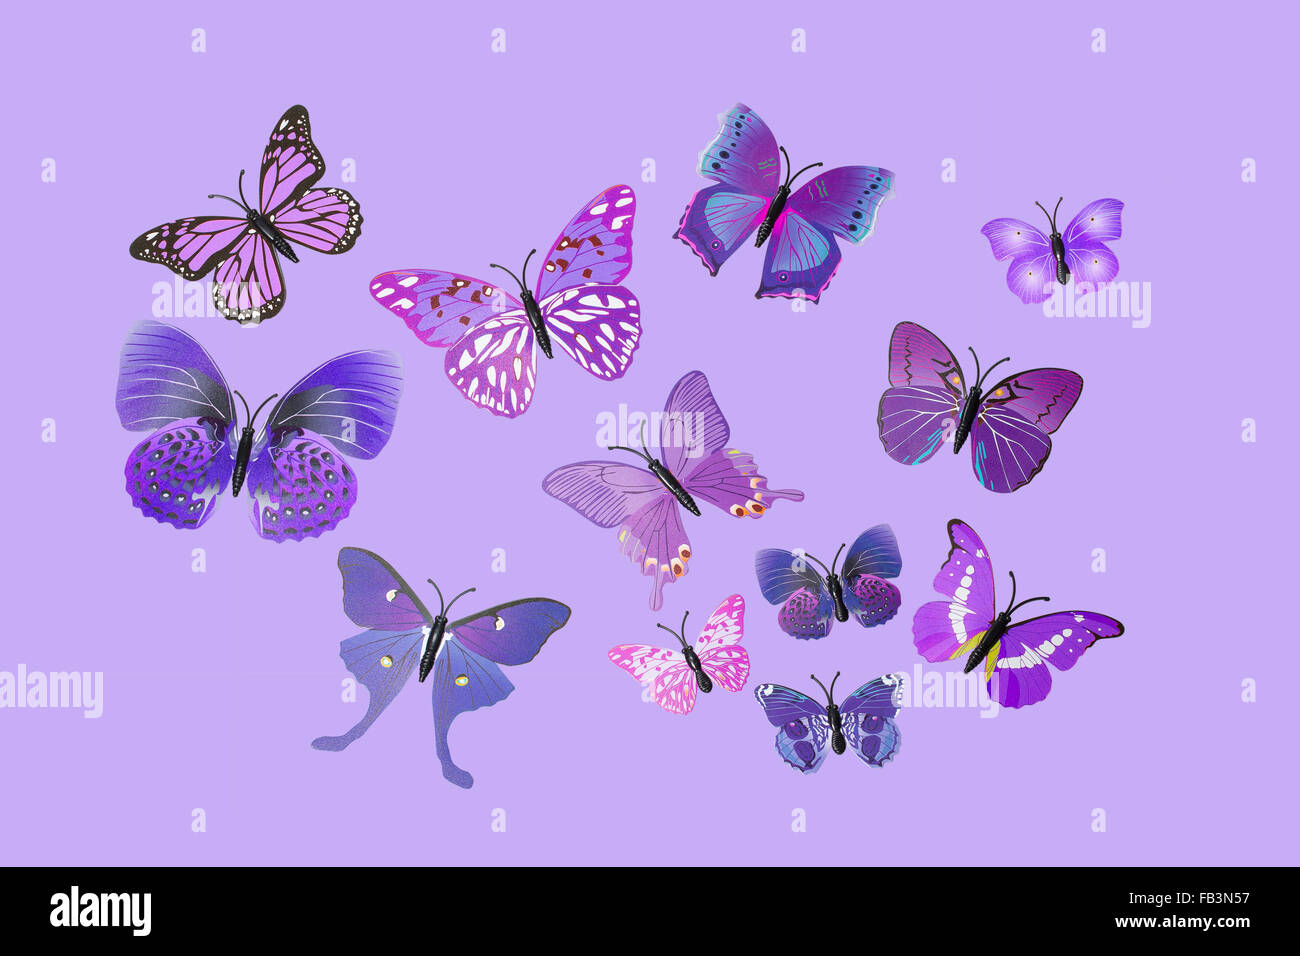 Collection of Purple Fantasy Butterflies Clip Art - Stock Image